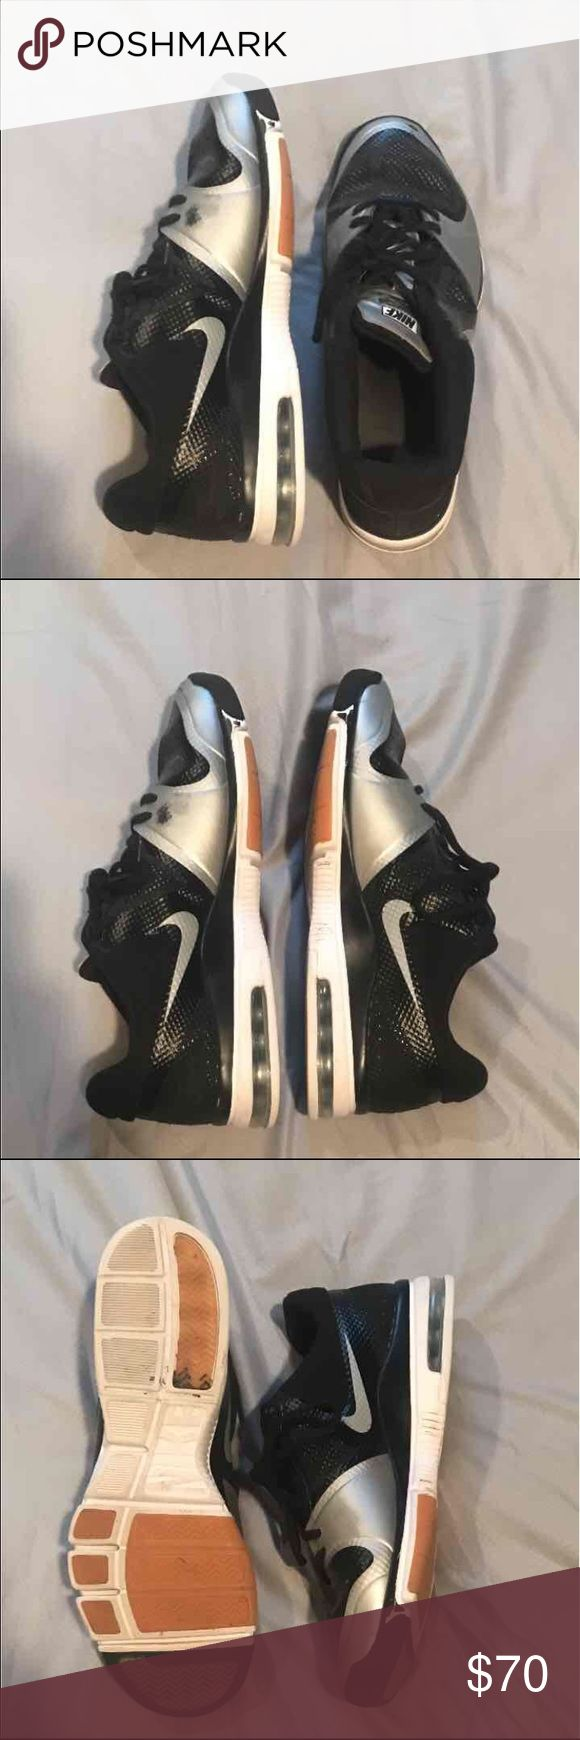 Nike Air Max Size 10 Volleyball shoe Worn a decent amount but overall still in such good shape, haven't been touched in a year and a half. A few marks from sliding and stuff but barely noticeable. Size 10, originally bought for $120. Black and white, will match any jersey. Willing to negotiate price!! Nike Shoes Athletic Shoes